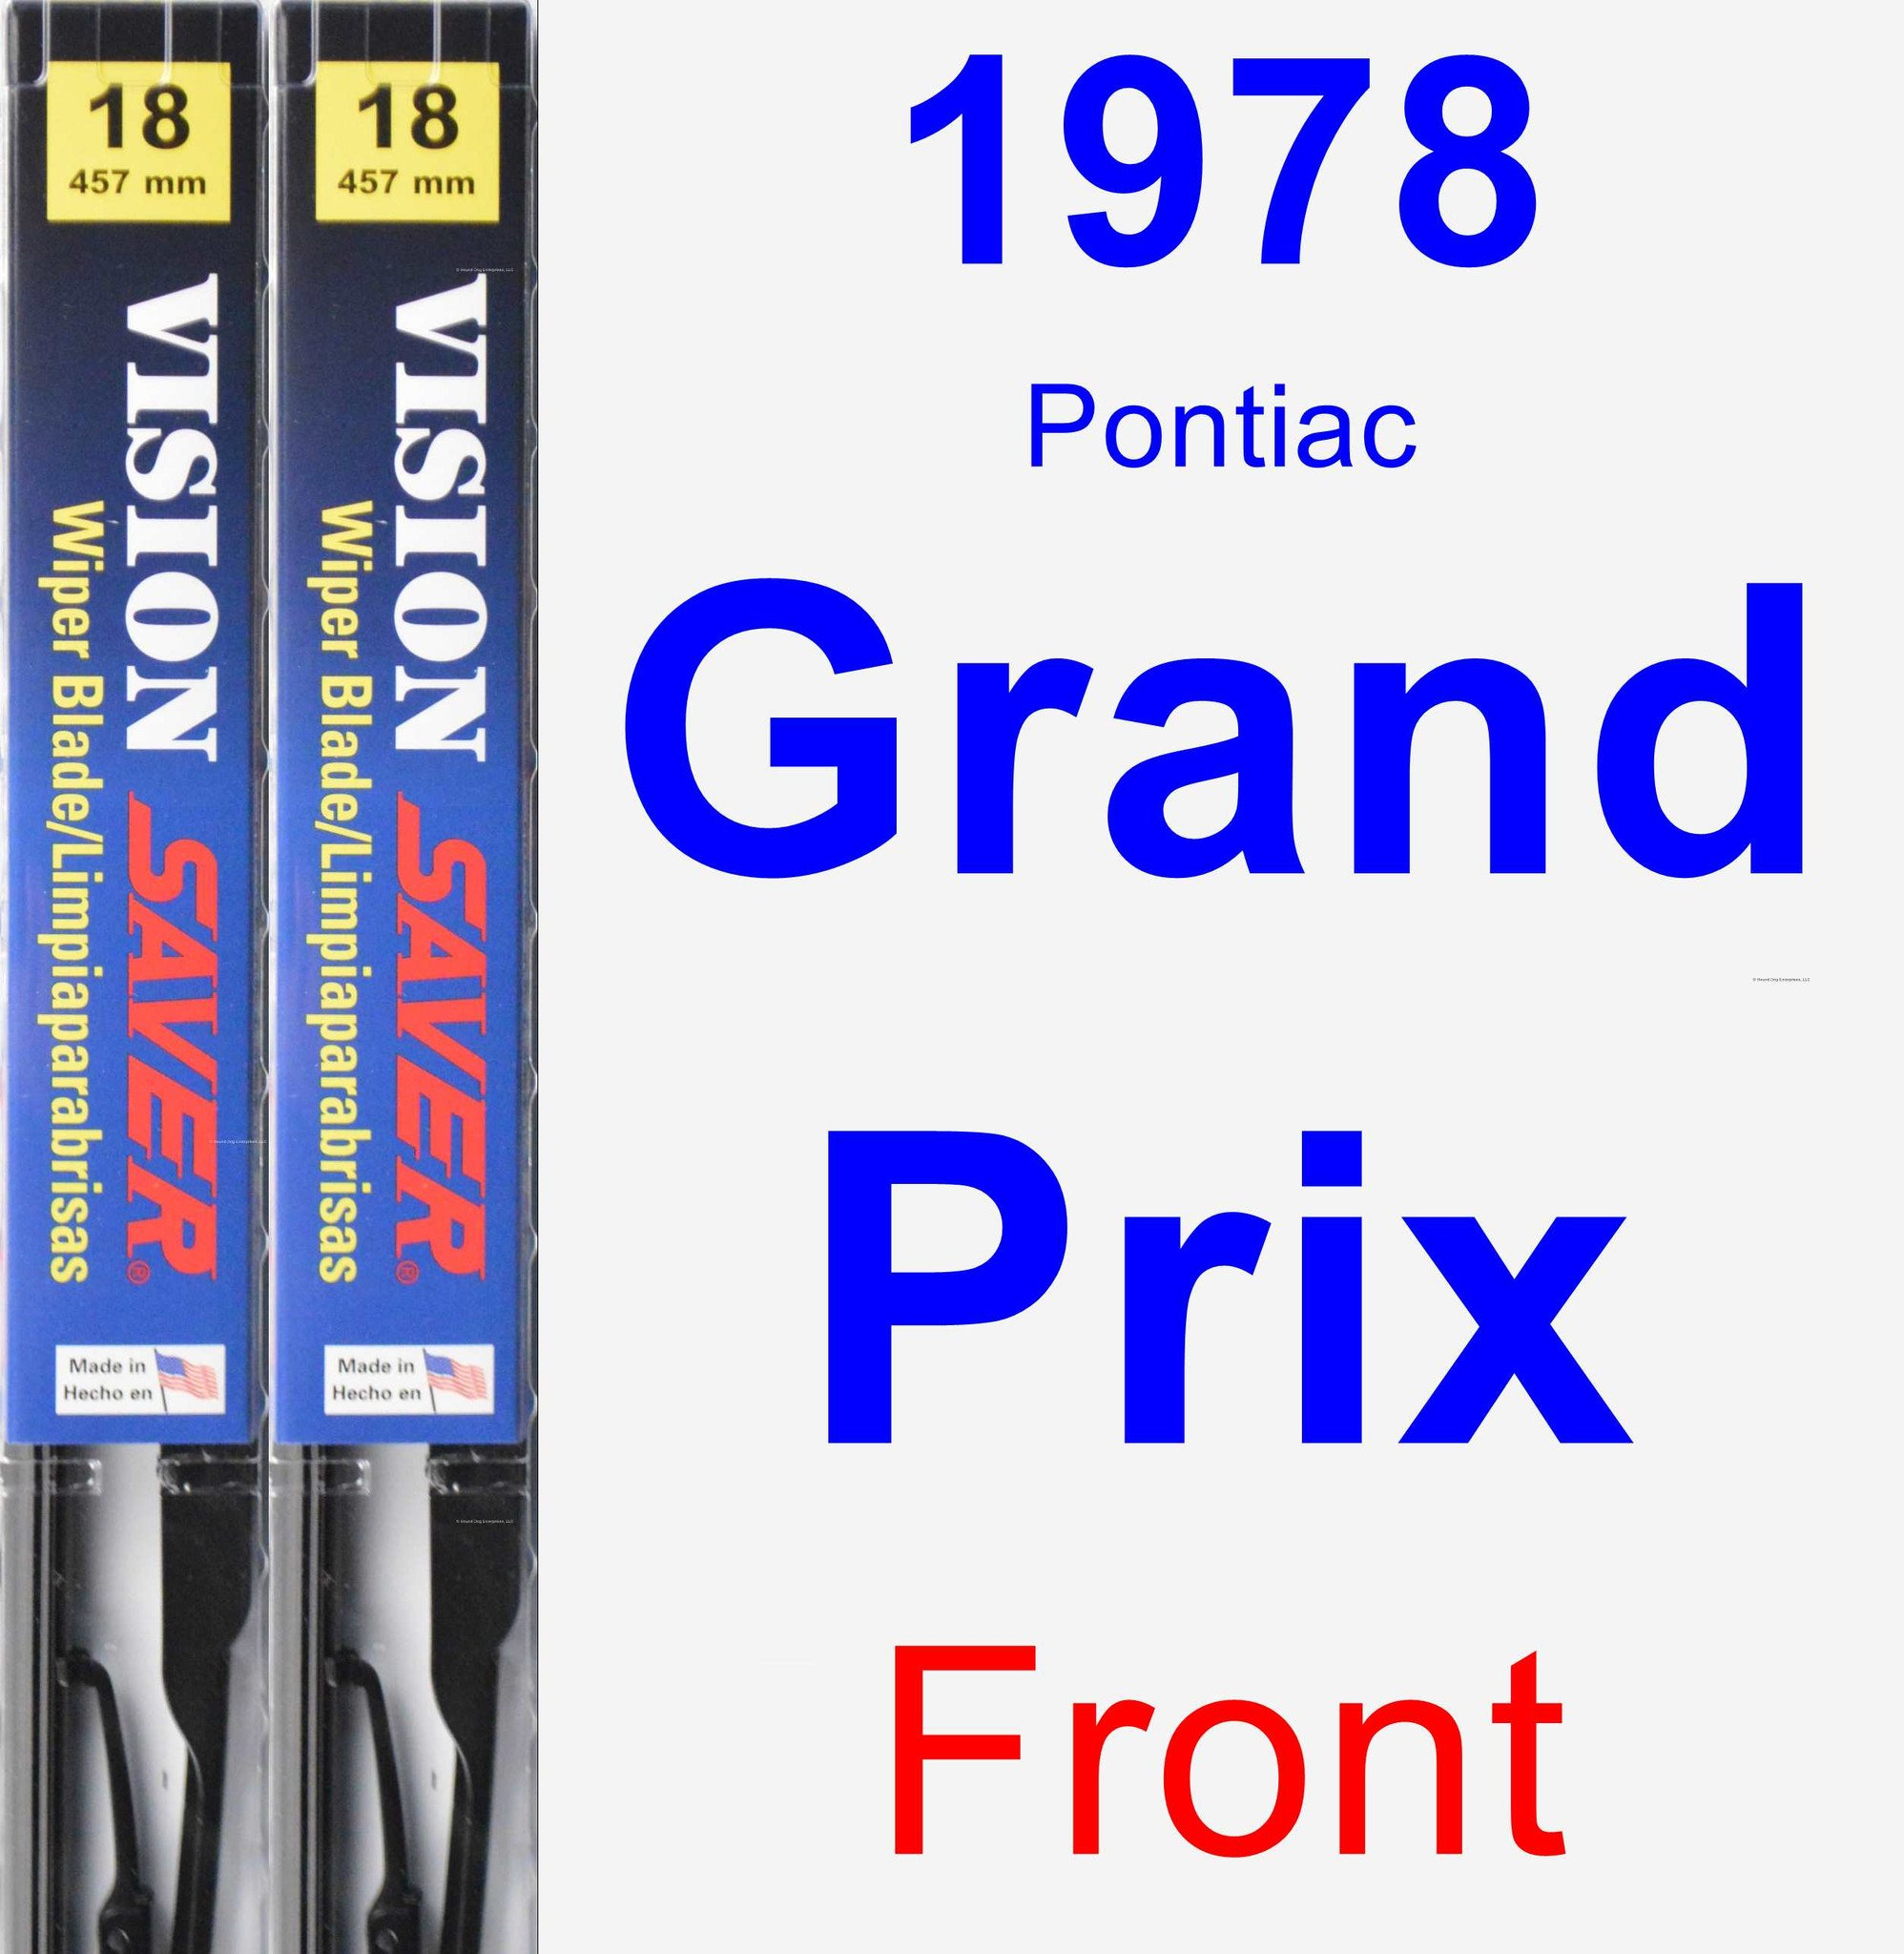 1978 Pontiac Grand Prix Wiper Blade Set/Kit (Front) (2 Blades) - Vision Saver